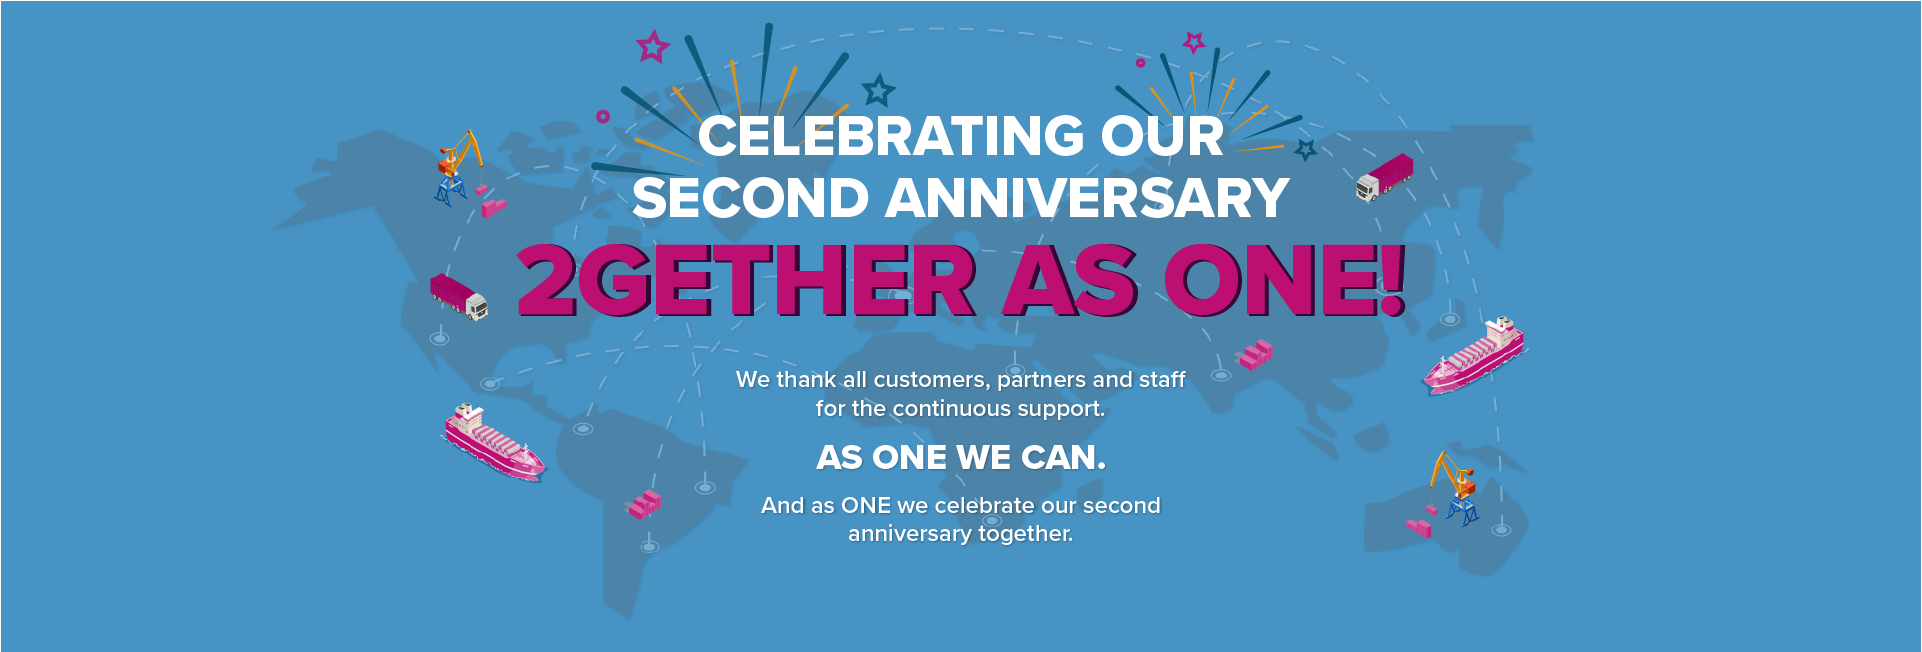 ONE second anniversary